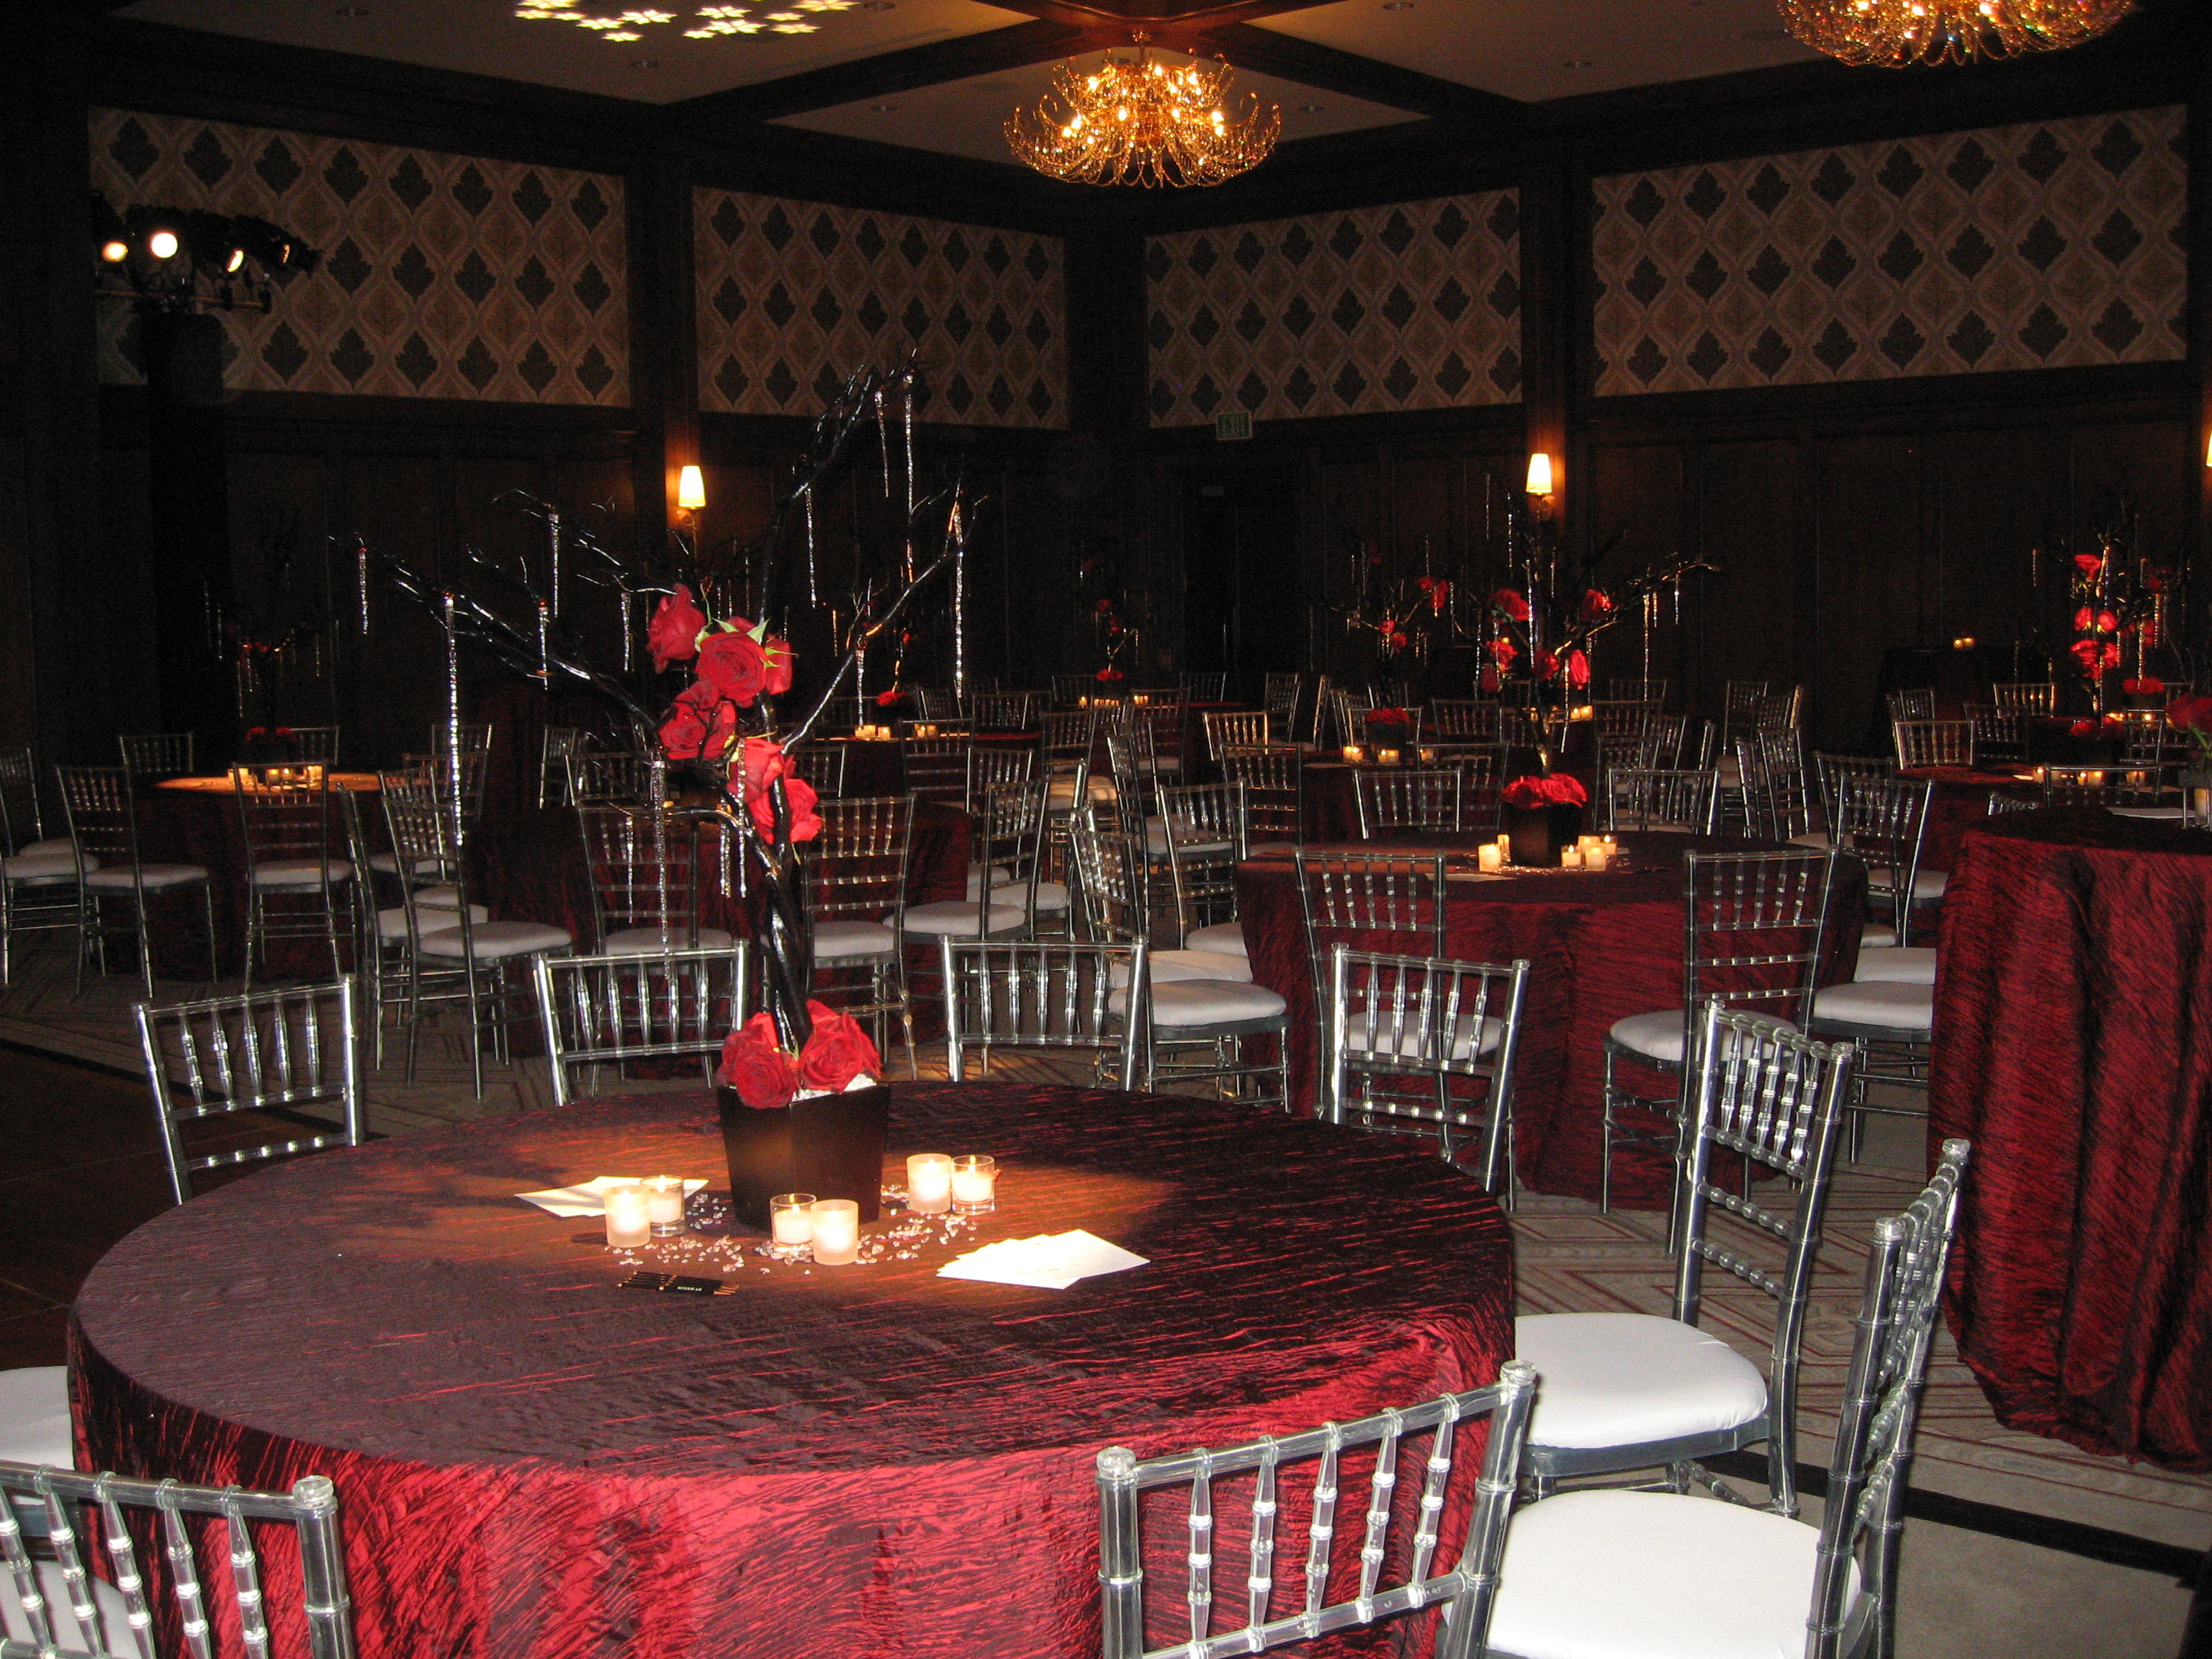 The ballroom was decorated for the Fire & Ice themed event